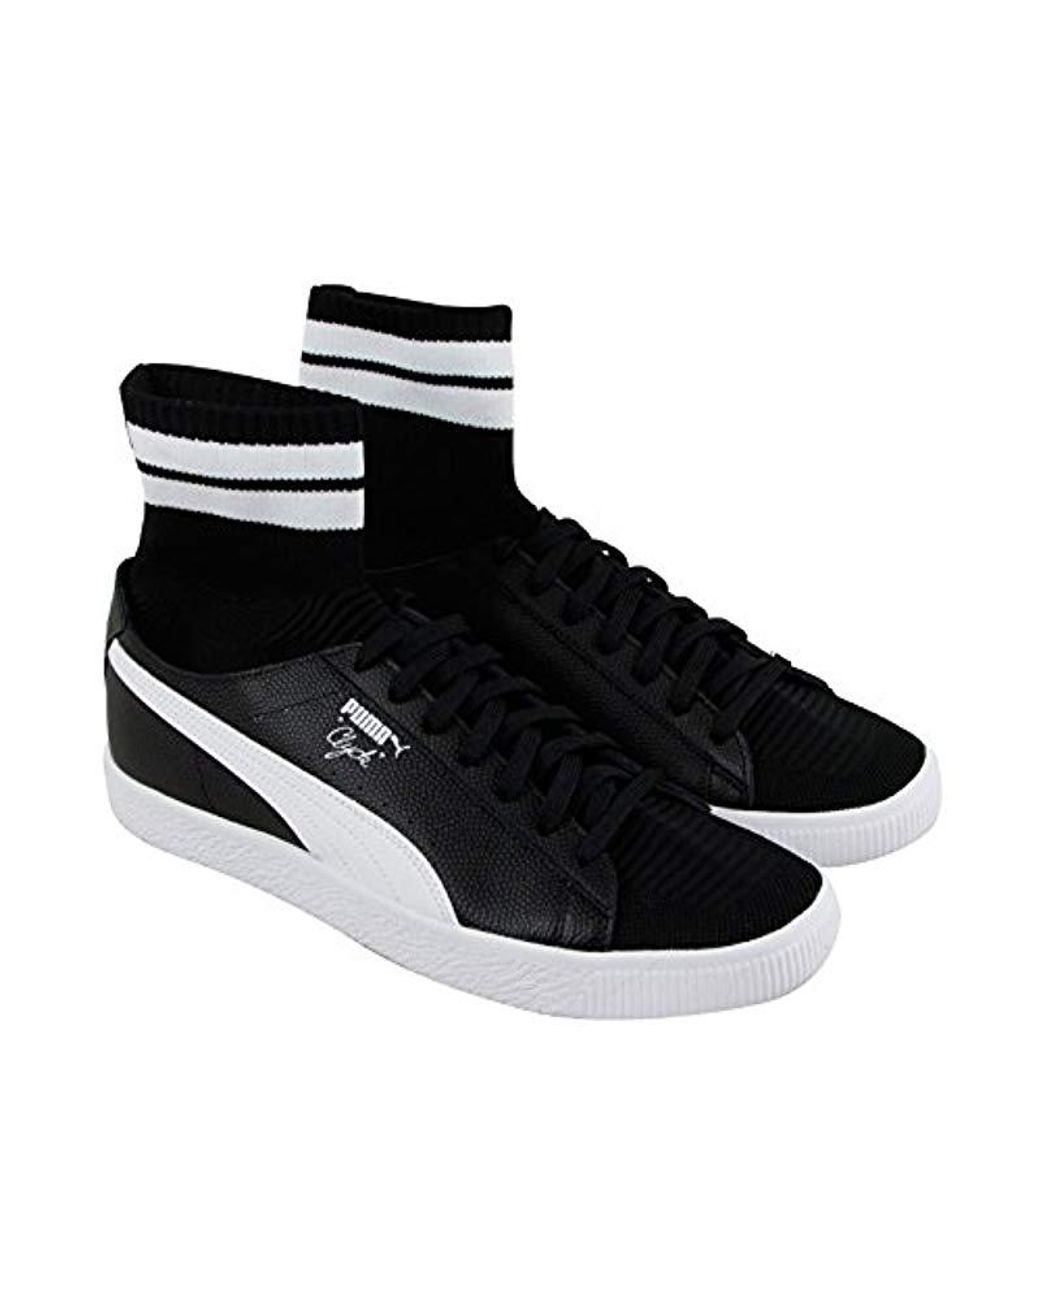 san francisco 33358 d05fe Men's Clyde Sock S Black Leather Lace Up Trainers Shoes